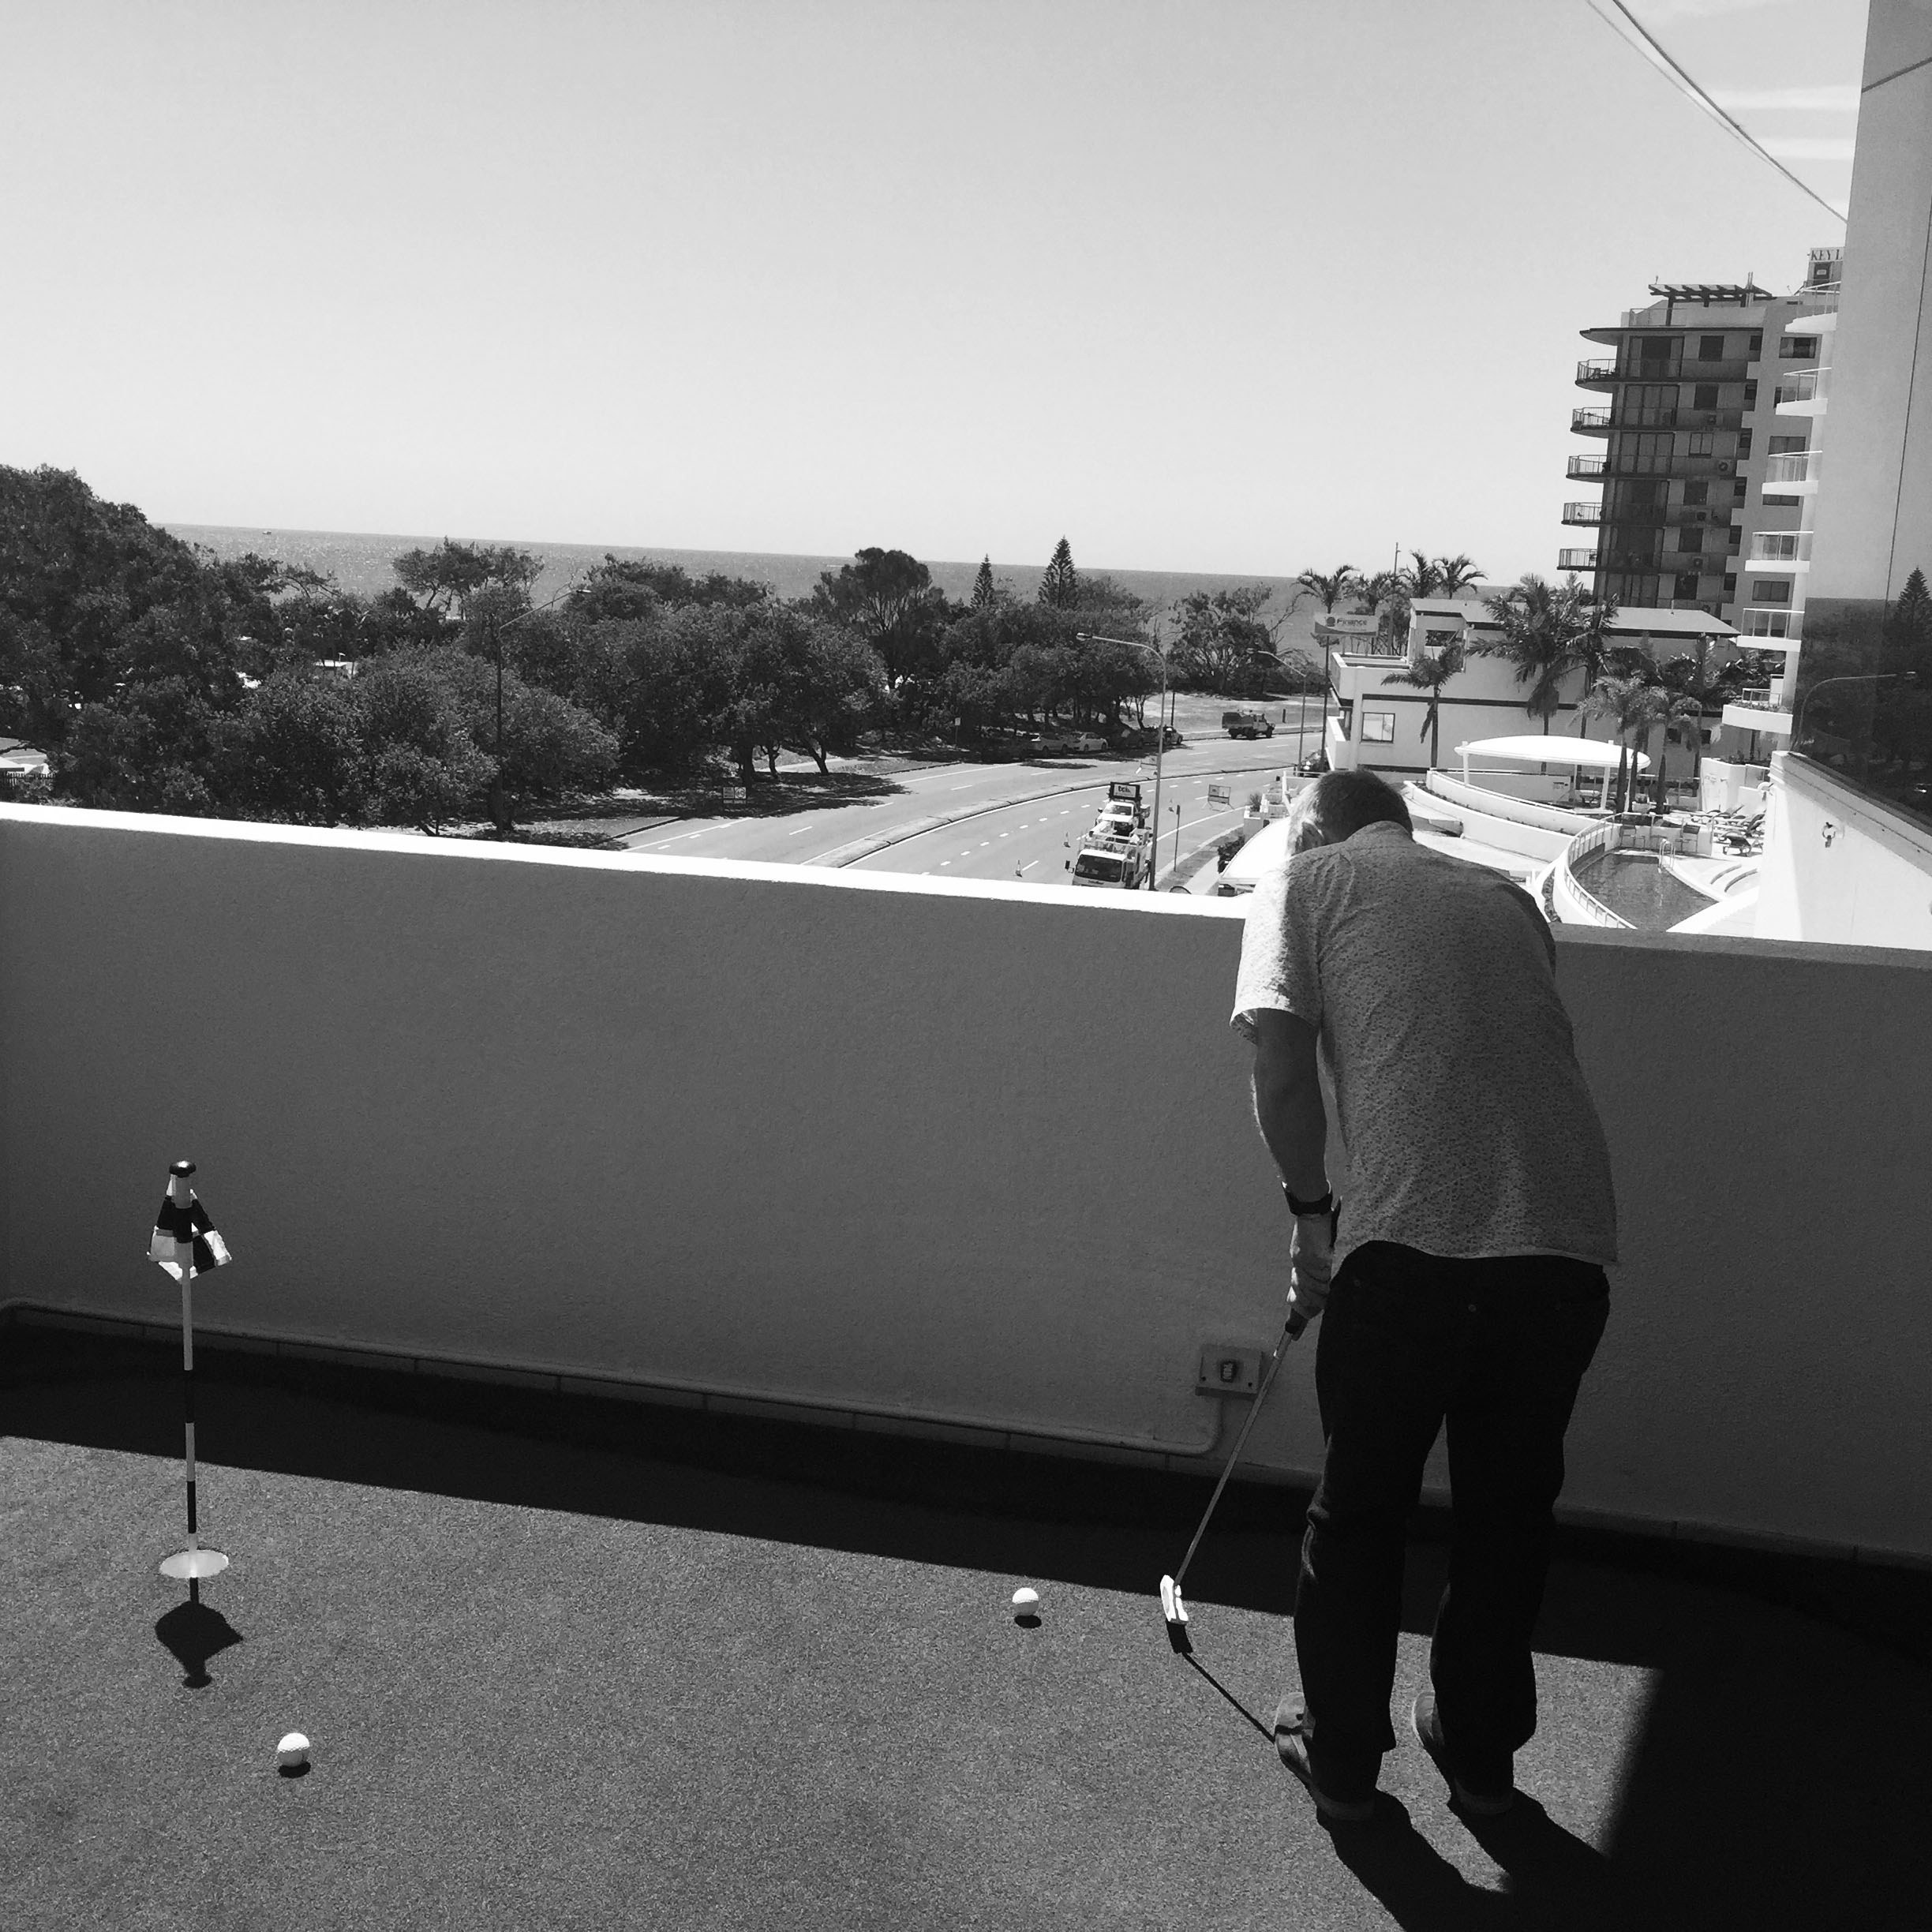 Inbox 2.0   Director Phil Jackson testing out the Putt Putt green overlooking the ocean